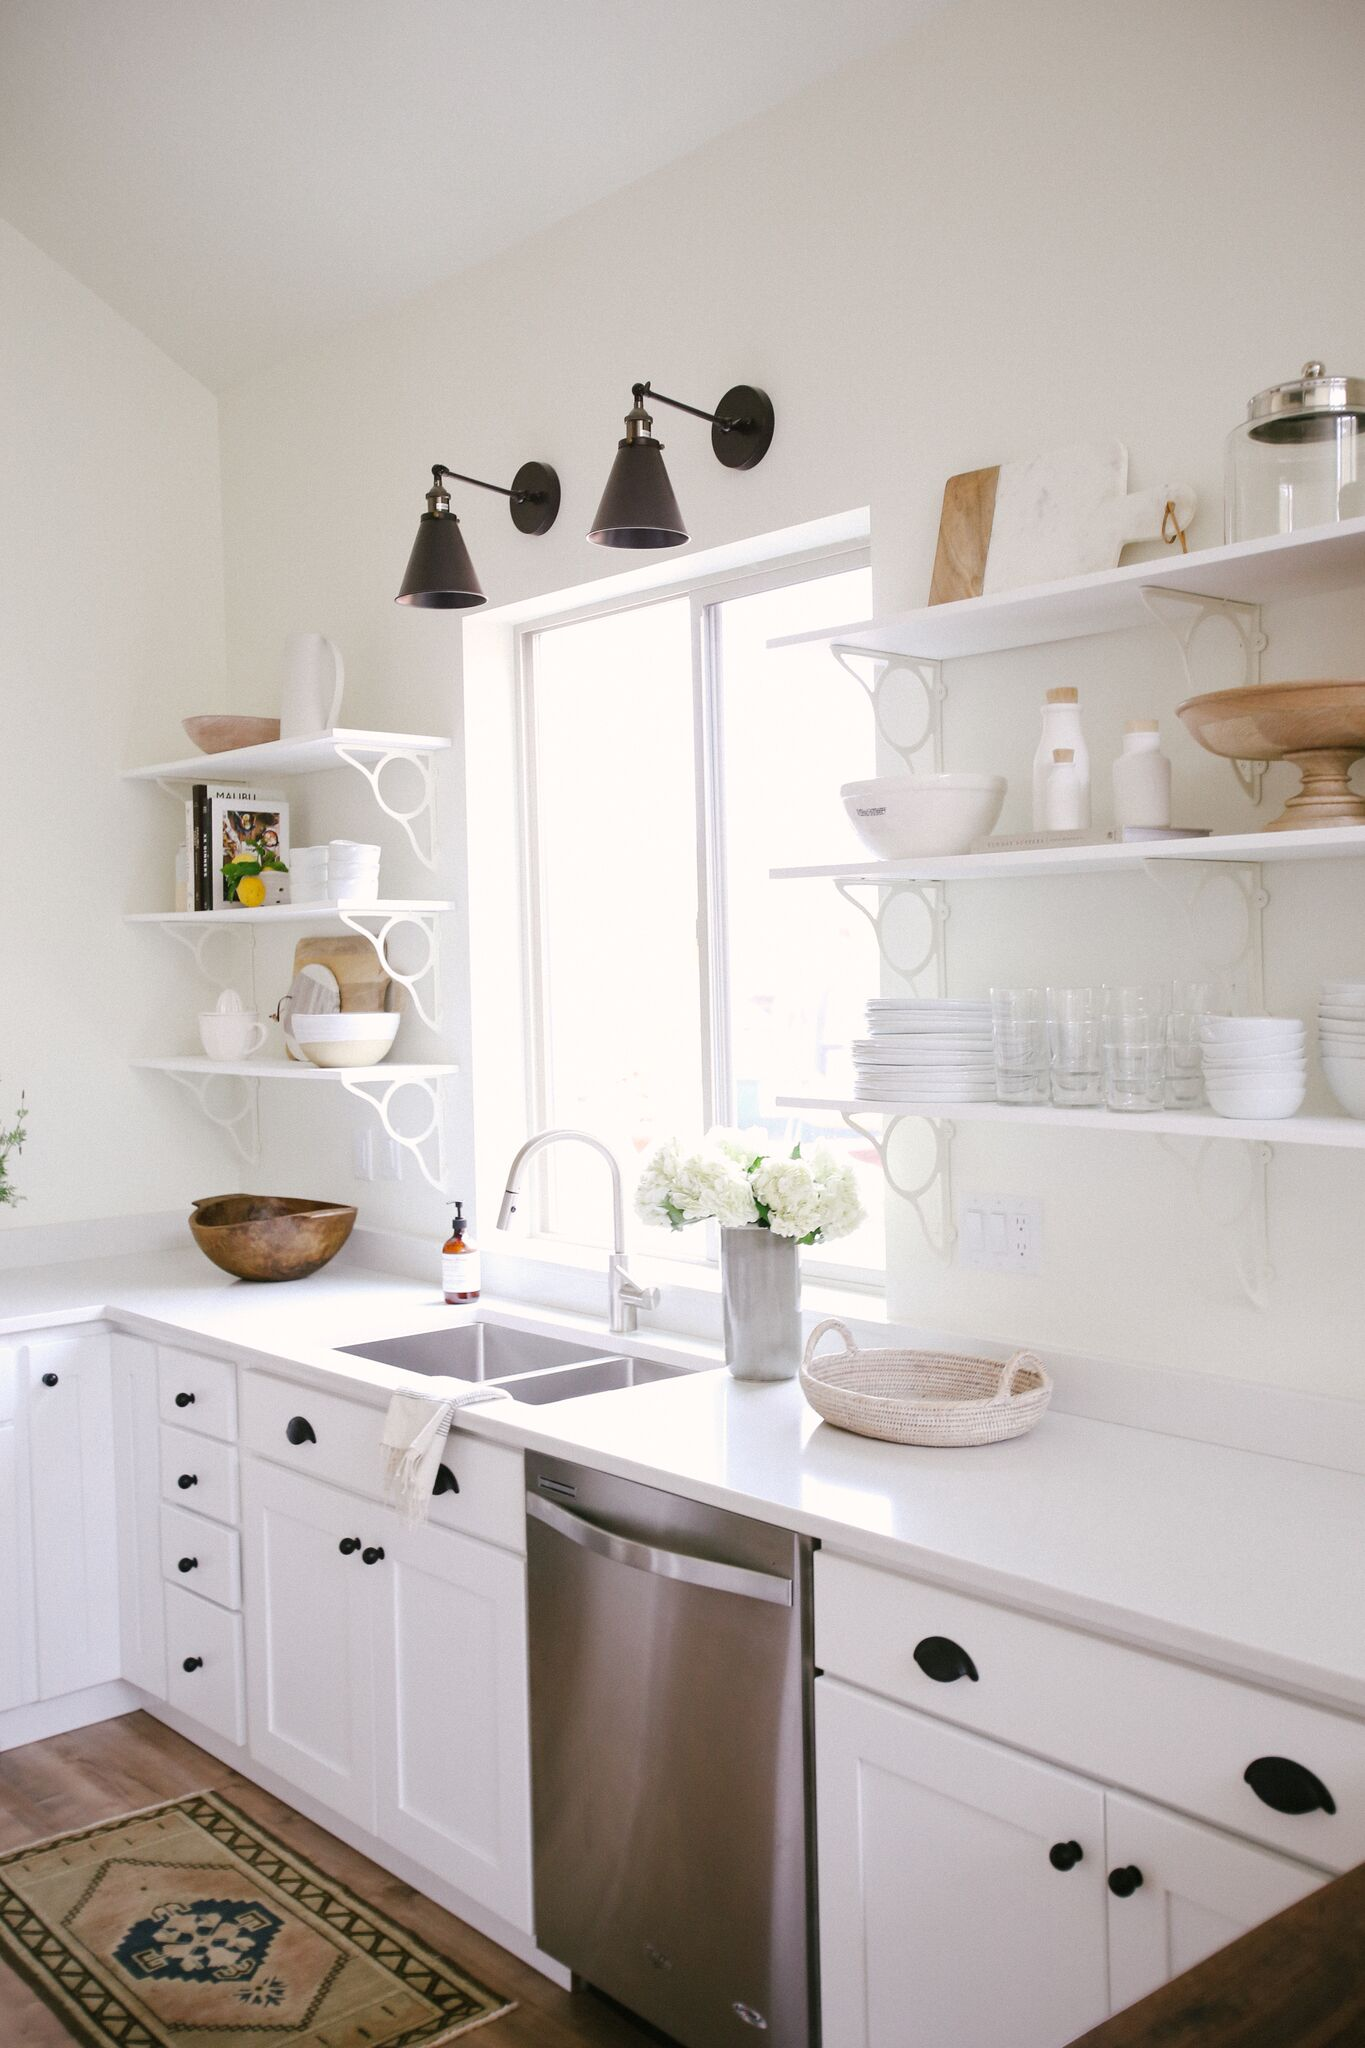 All White Minimalist Kitchen Styling with Black Hardware, Open Shelving, and Natural Wood Accents